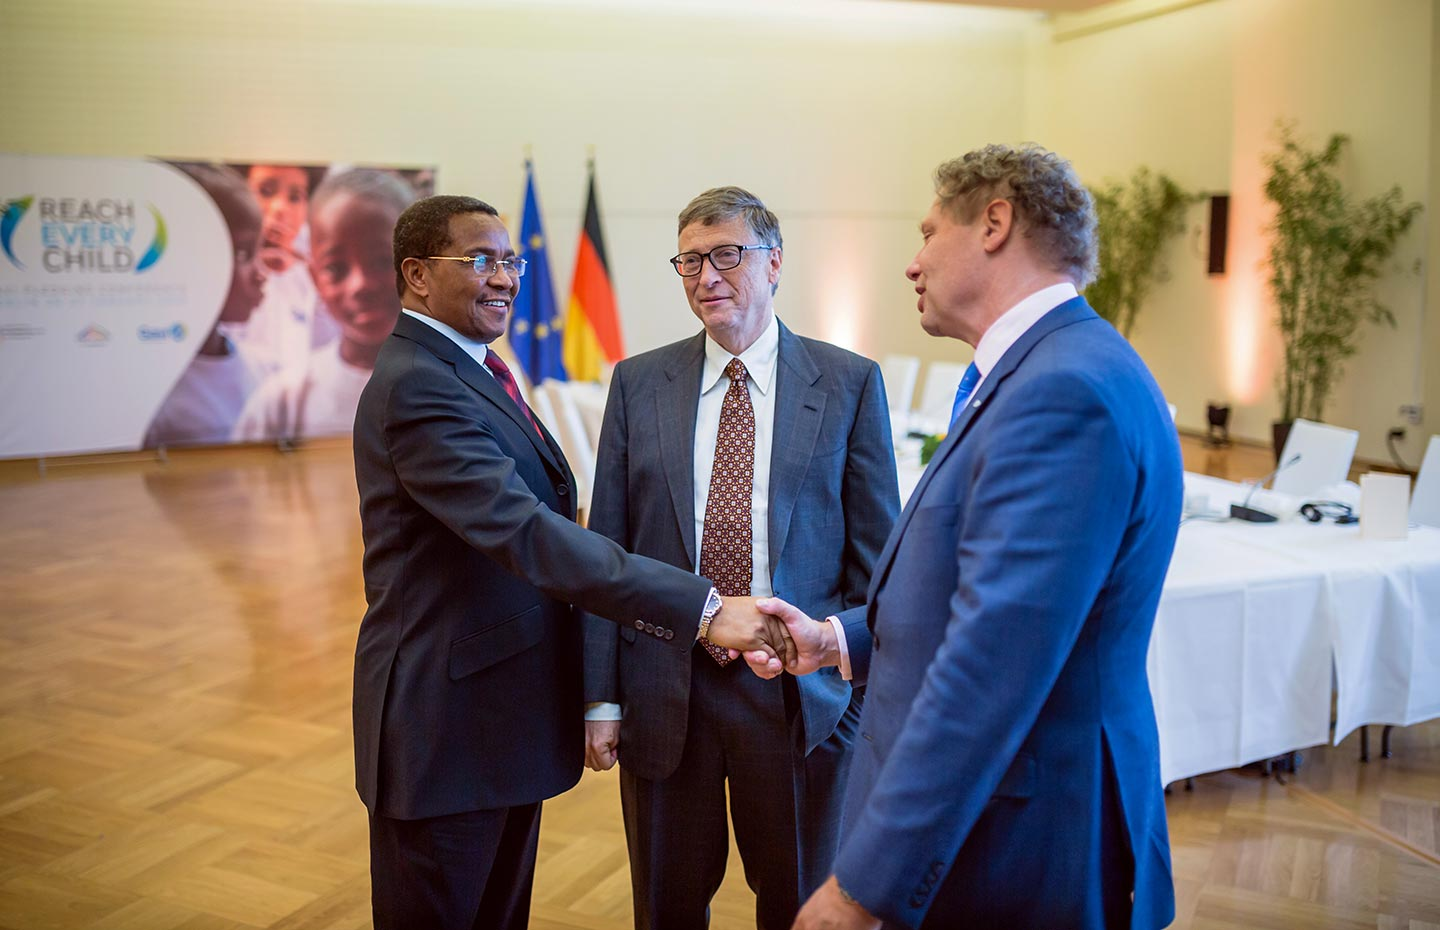 (L-R) Bill Gates, co-chair of the Bill & Melinda Gates Foundation, looks on as Global Ambassador for immunisation and former President of Tanzania Jakaya Kikwete (L) shakes hands with Gavi CEO Seth Berkley. Credit: Gavi/BMZ/2015/Stefan Zeits